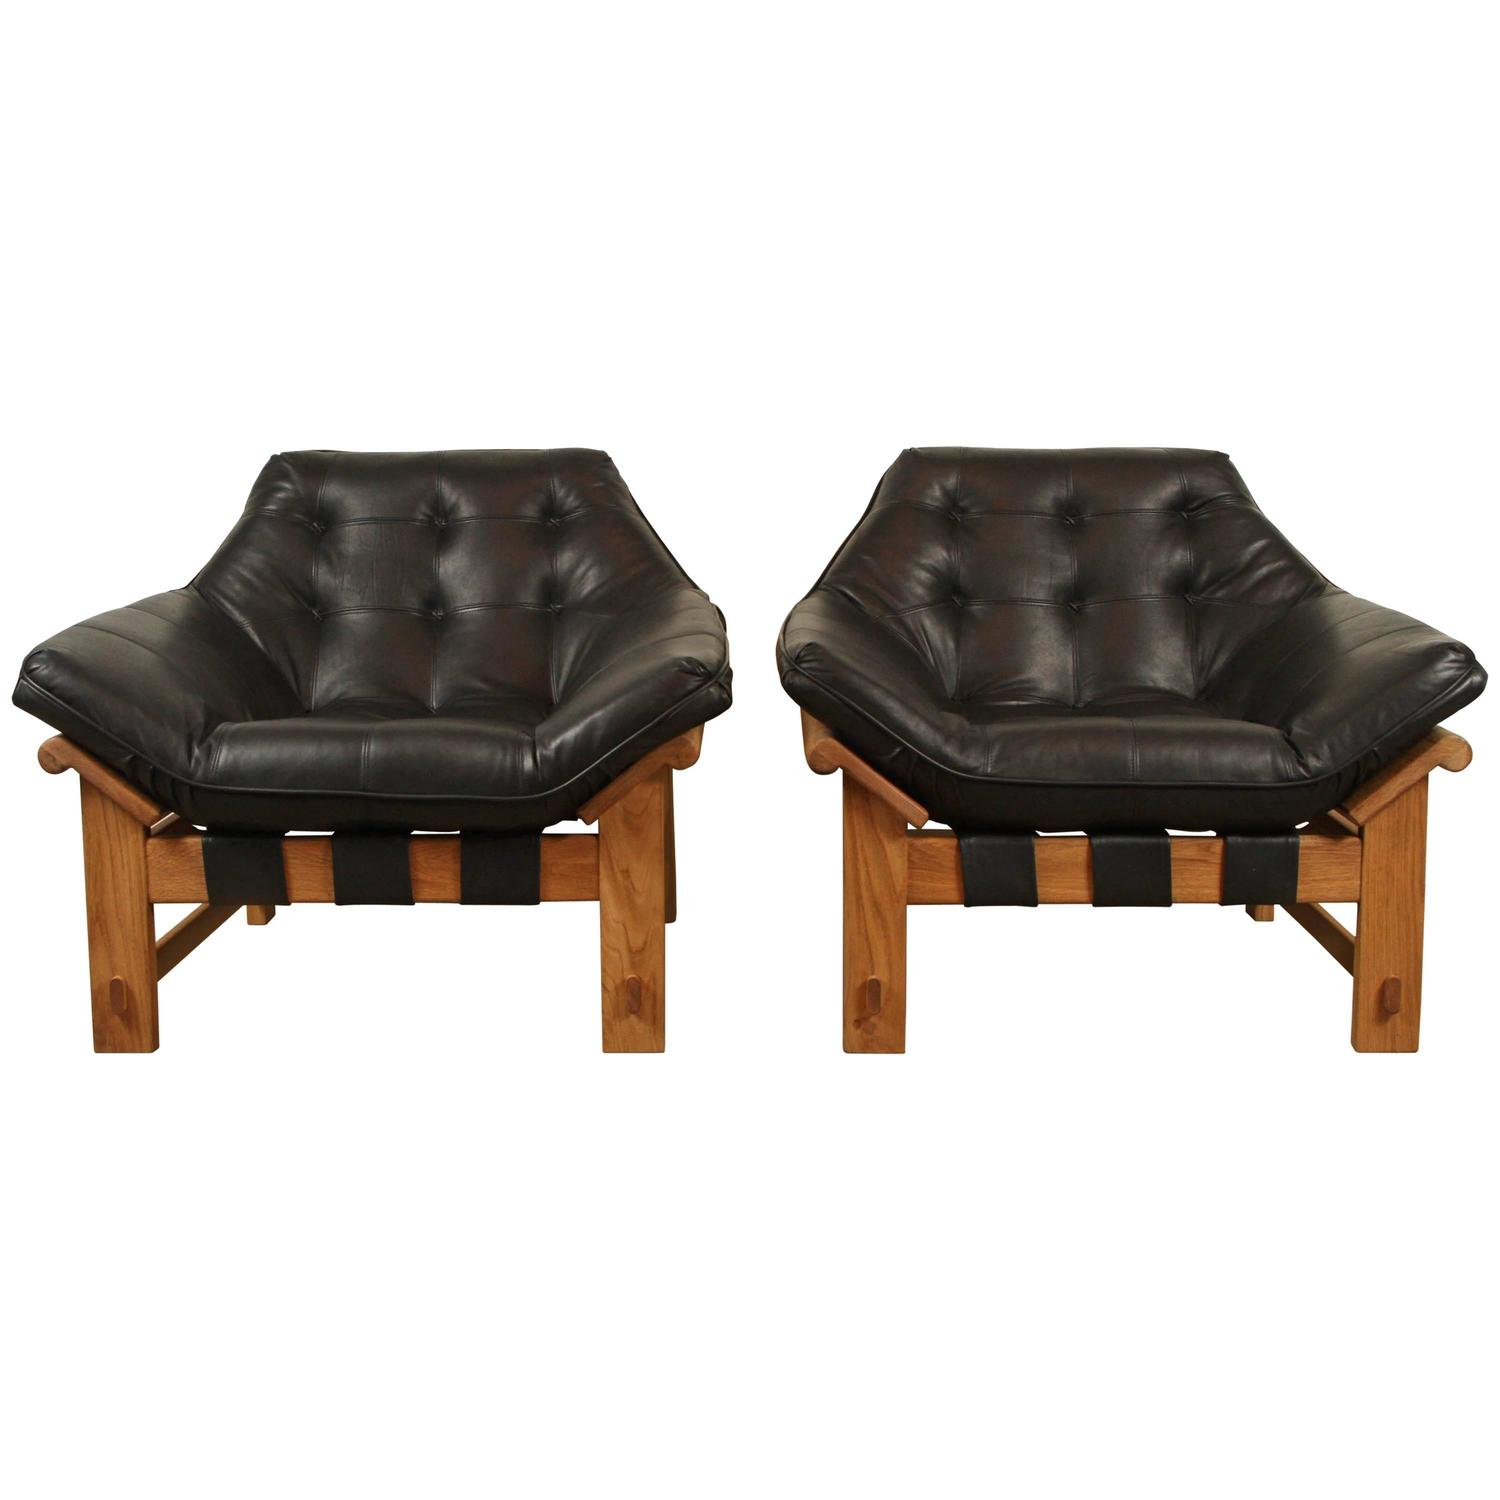 Antique lounge chairs - Pair Of Ojai Lounge Chairs By Lawson Fenning